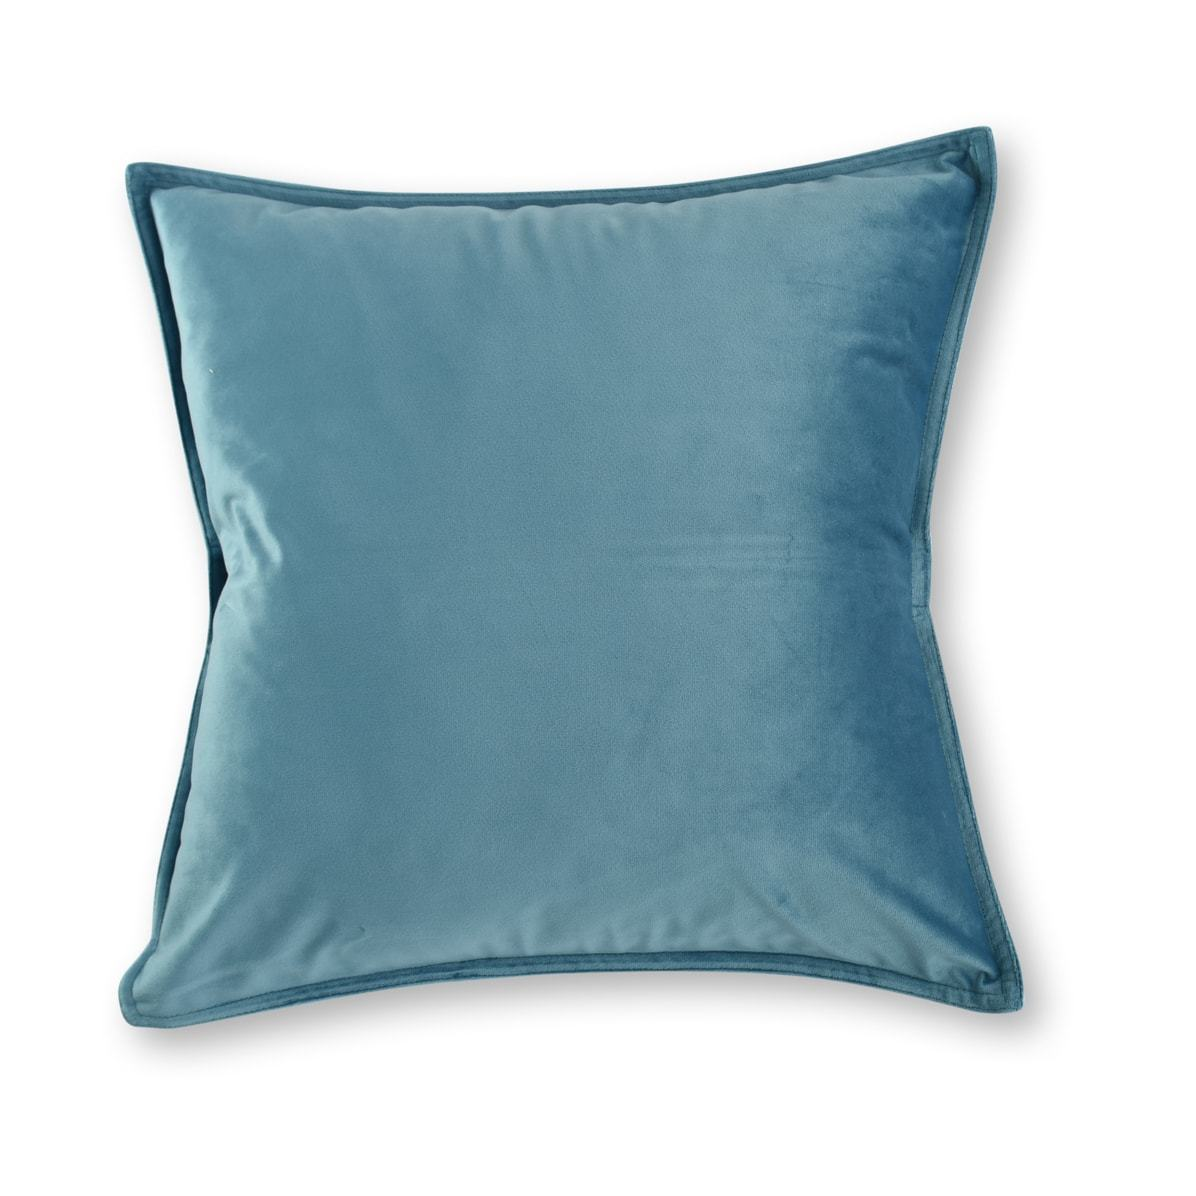 Velvet Blue European Pillowcase